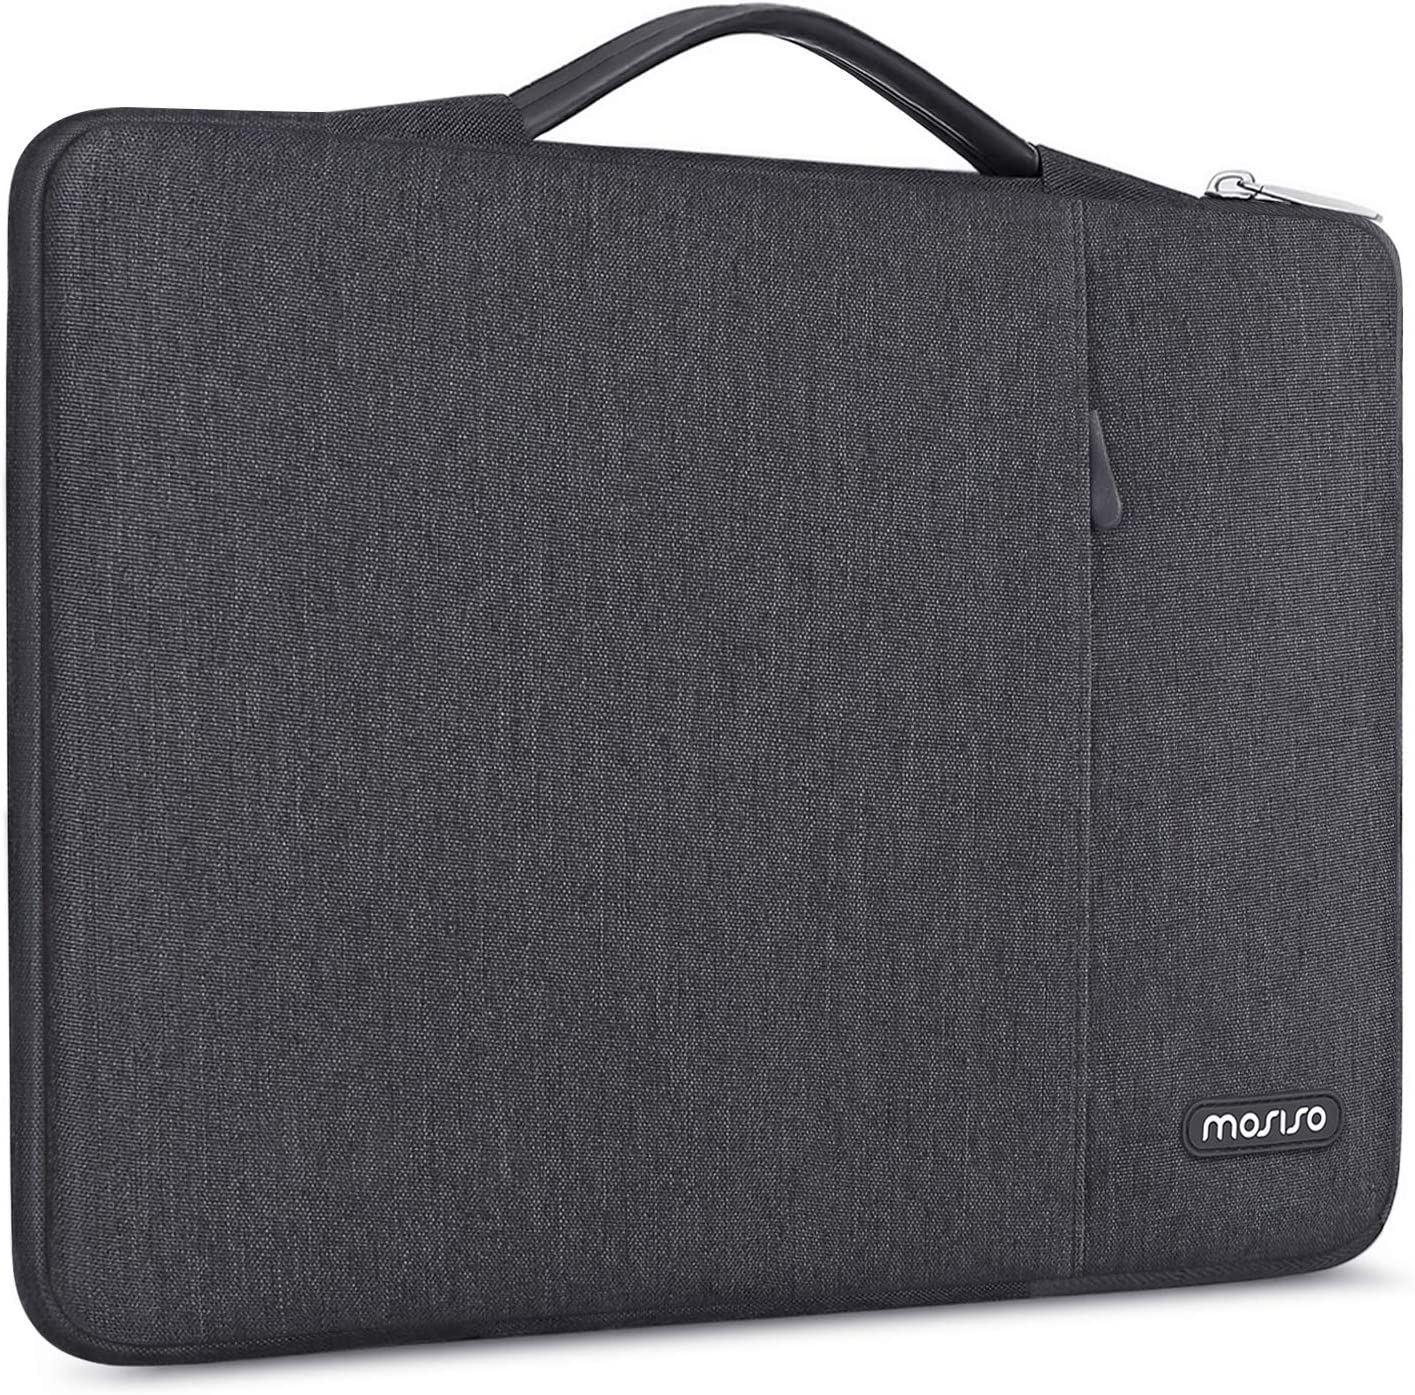 MOSISO 360 Protective Laptop Sleeve Compatible with 13-13.3 inch MacBook Pro, MacBook Air, Notebook Computer, Shockproof Carrying Case Cover Handbag, Polyester Vertical Bag with Pocket, Space Gray